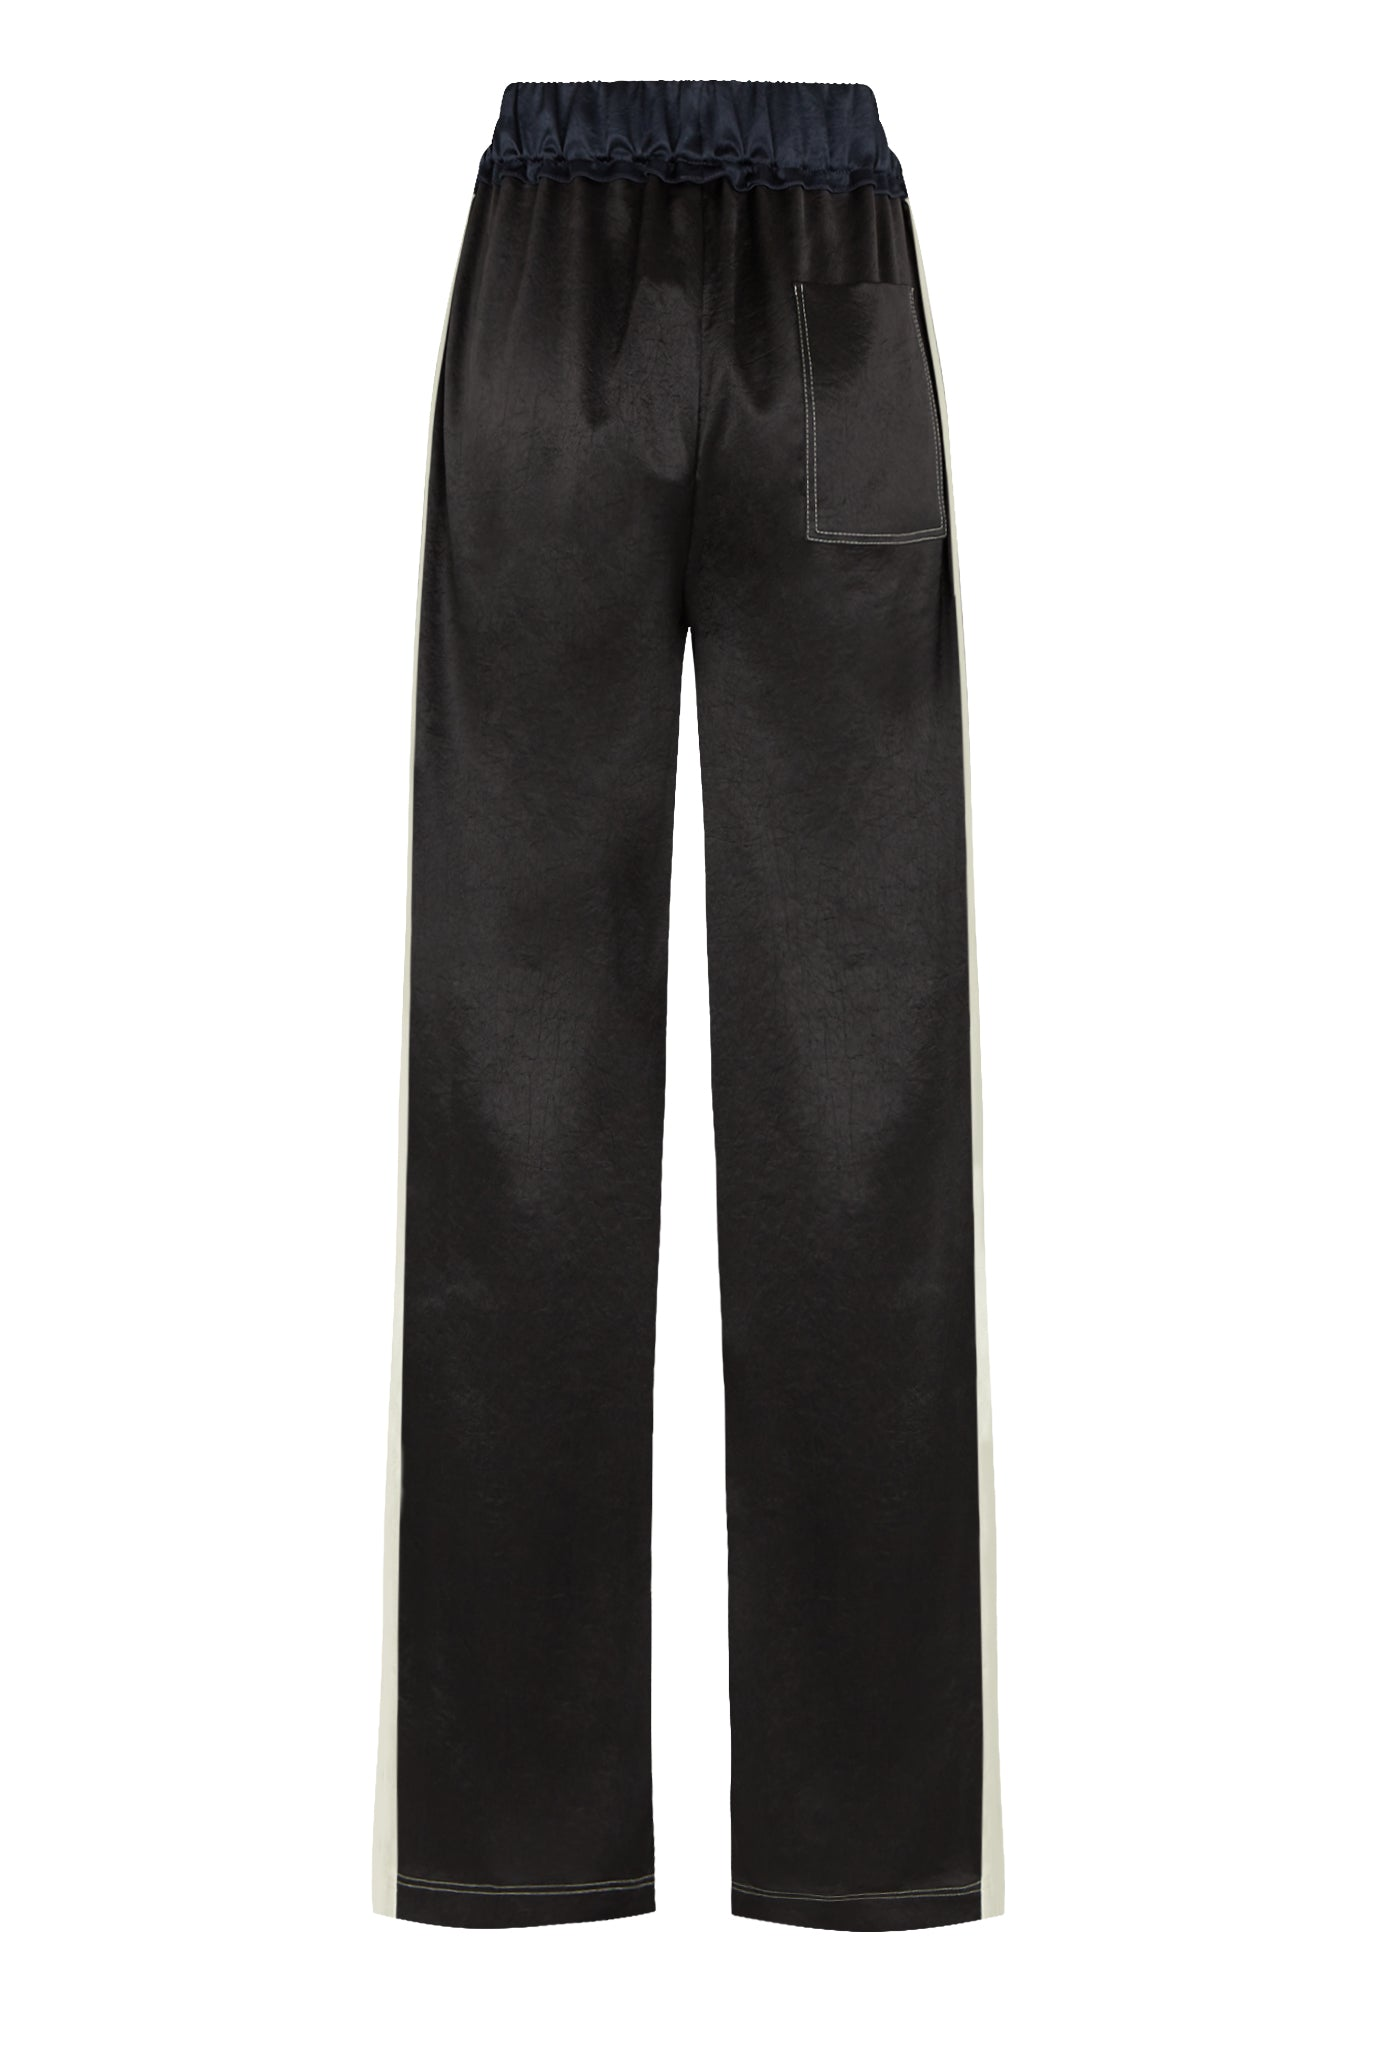 Classic wide leg jogger black navy natural fabric Serena Bute